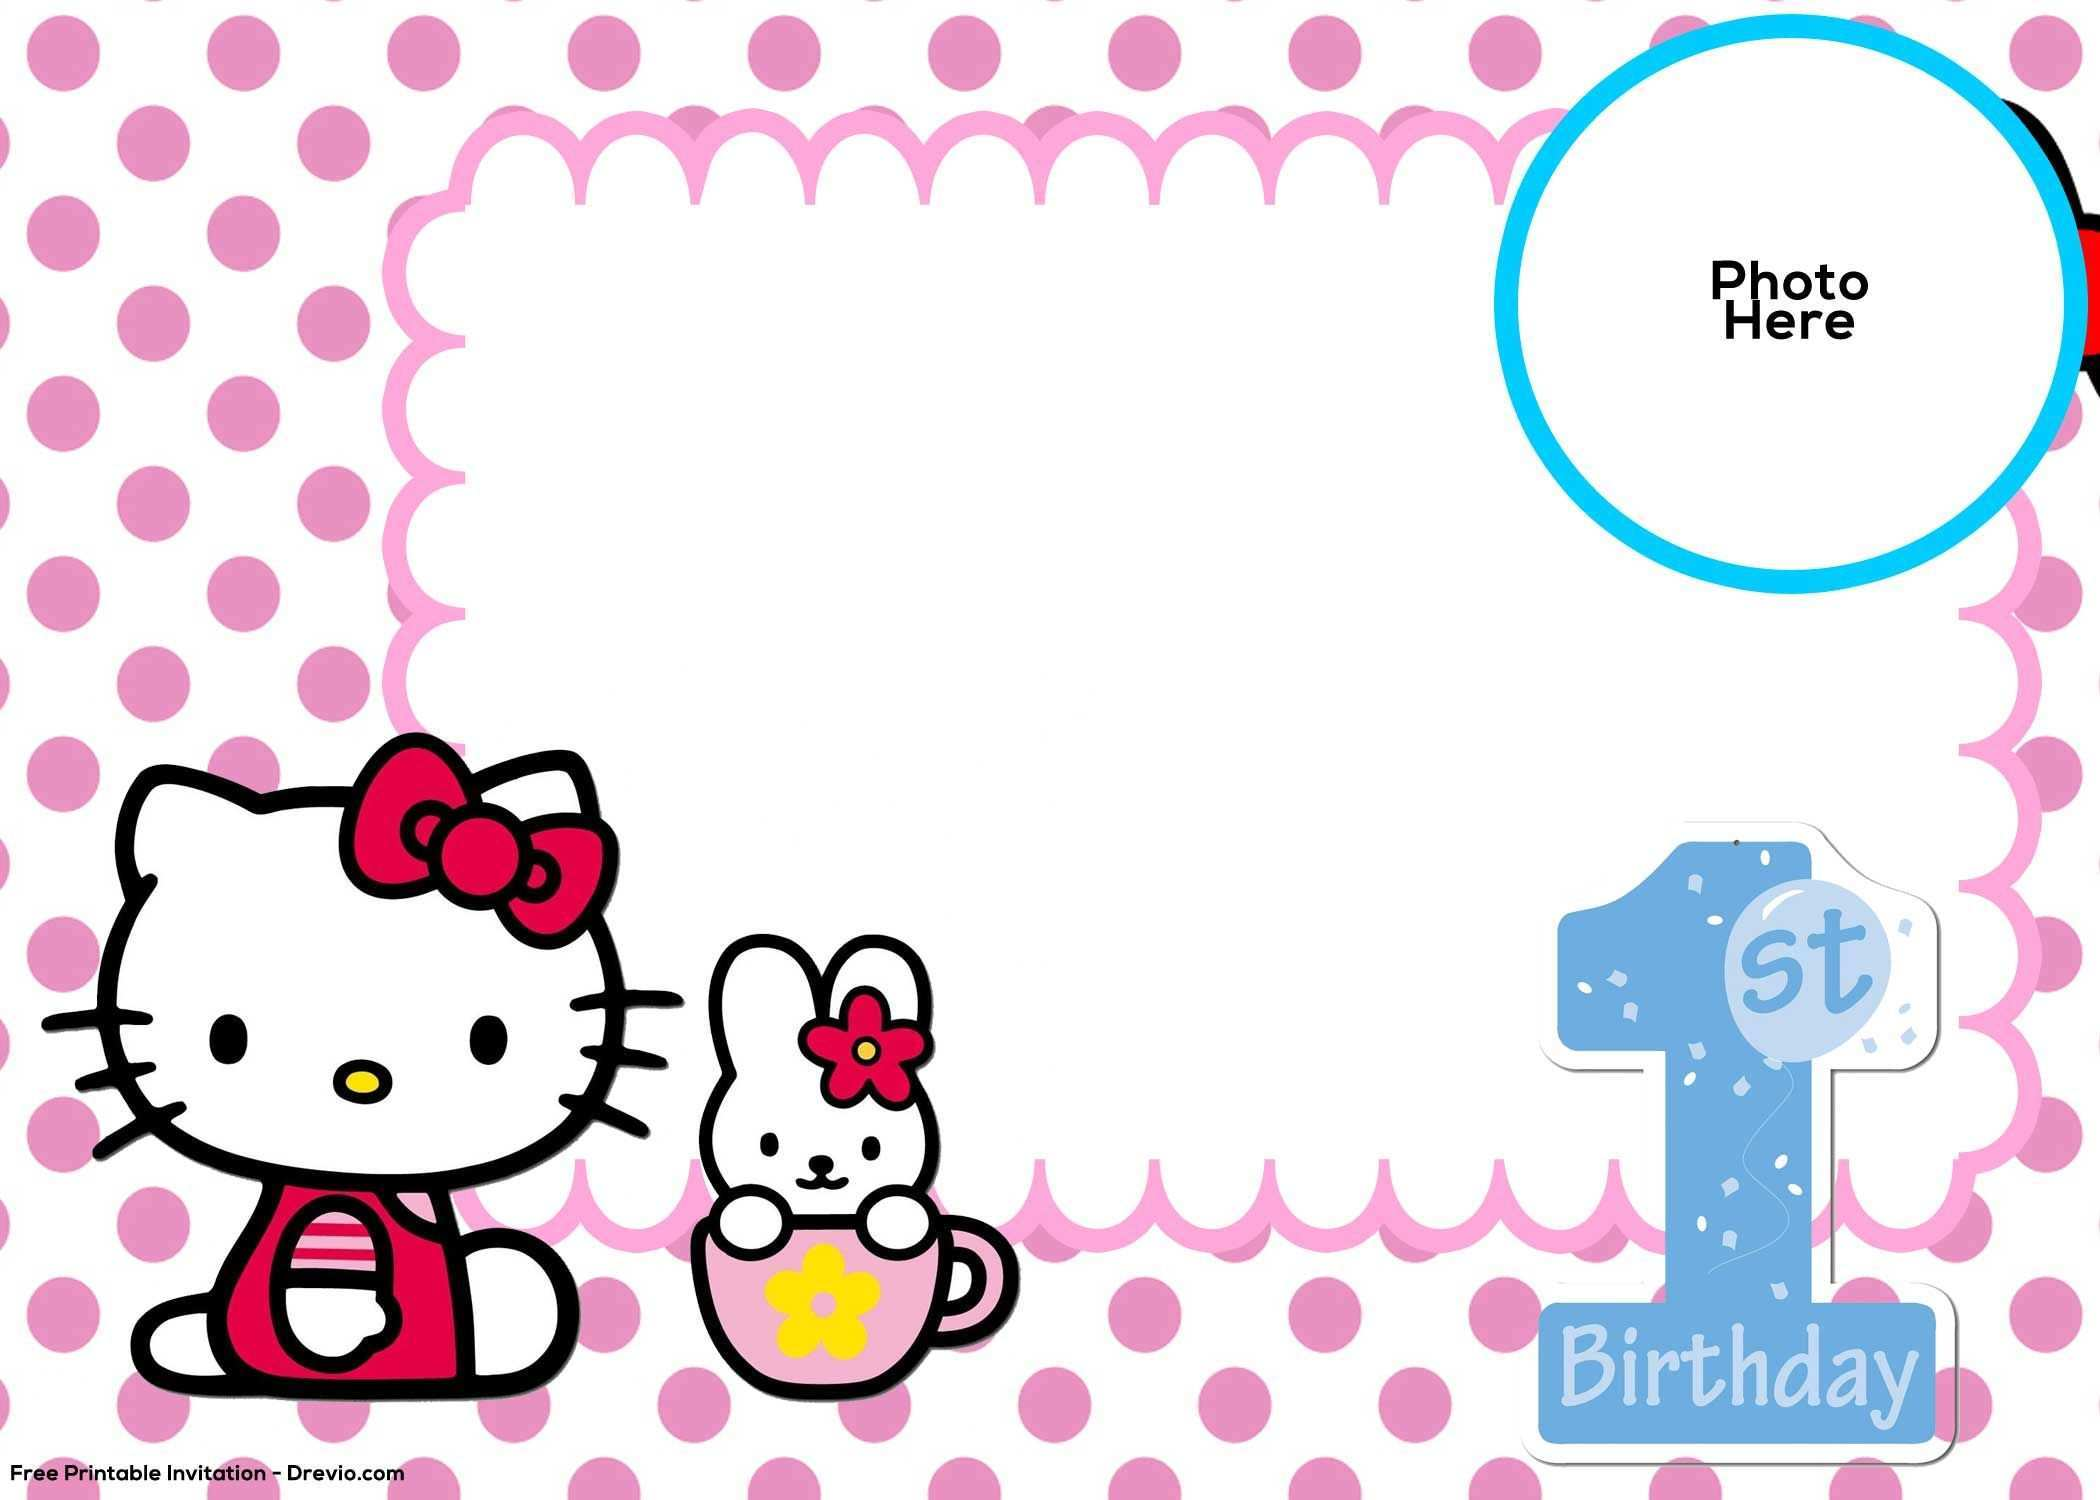 create hello kitty birthday invitation template free photo for cards design templates coloring pages Hello Kitty Birthday Invitations Free Printable